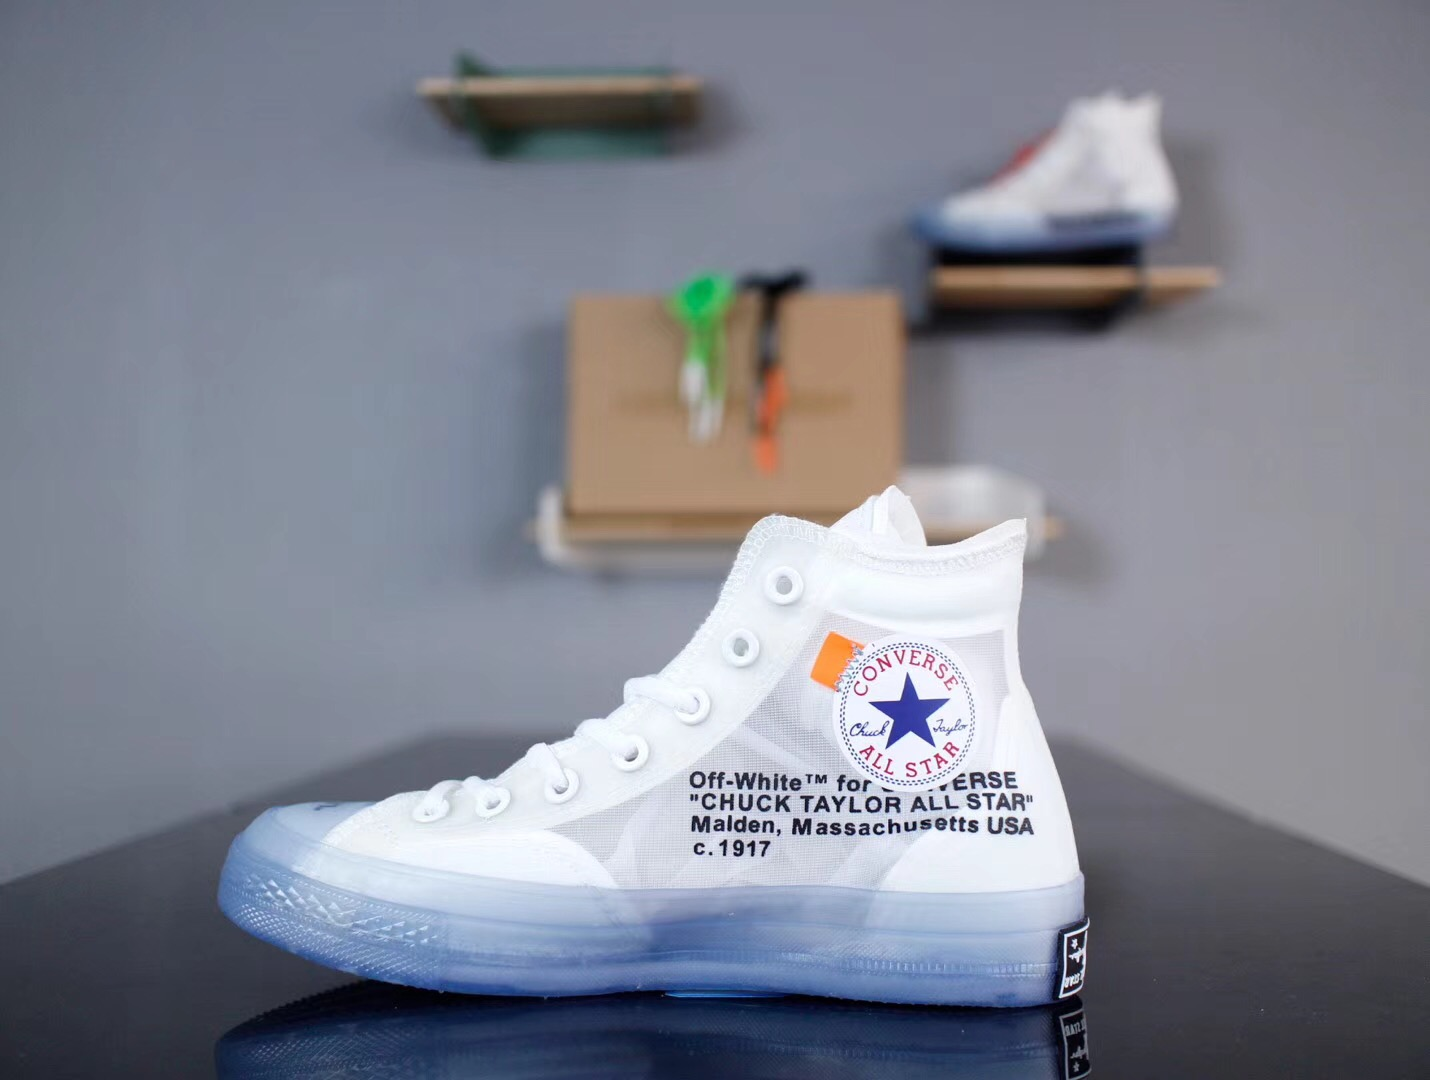 c7291f4239ba Giày Converse All Star 1970s Off-White màu trong